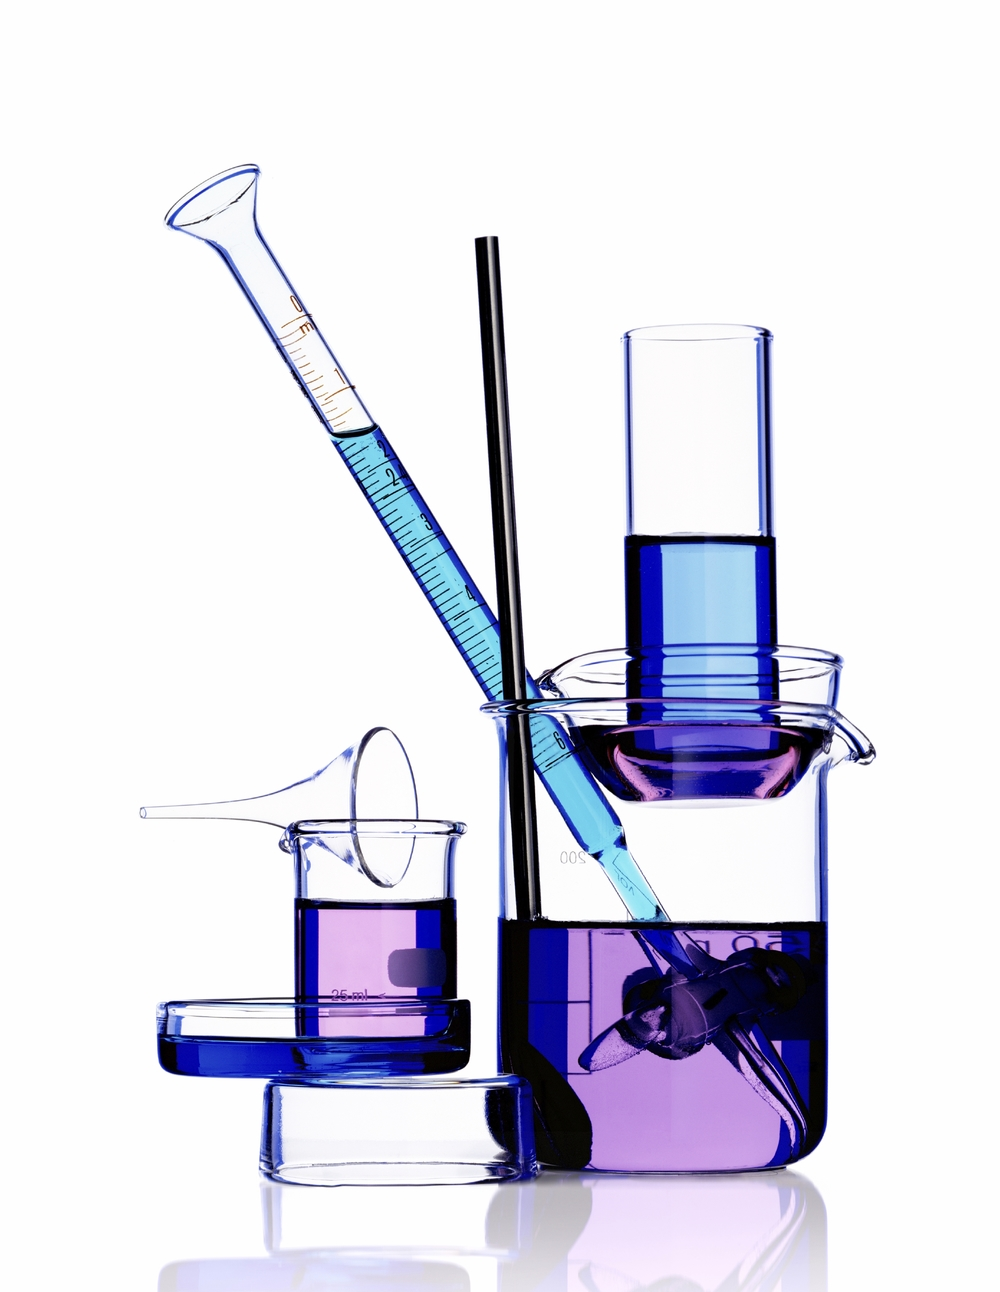 Life Sciences Sanitation Products